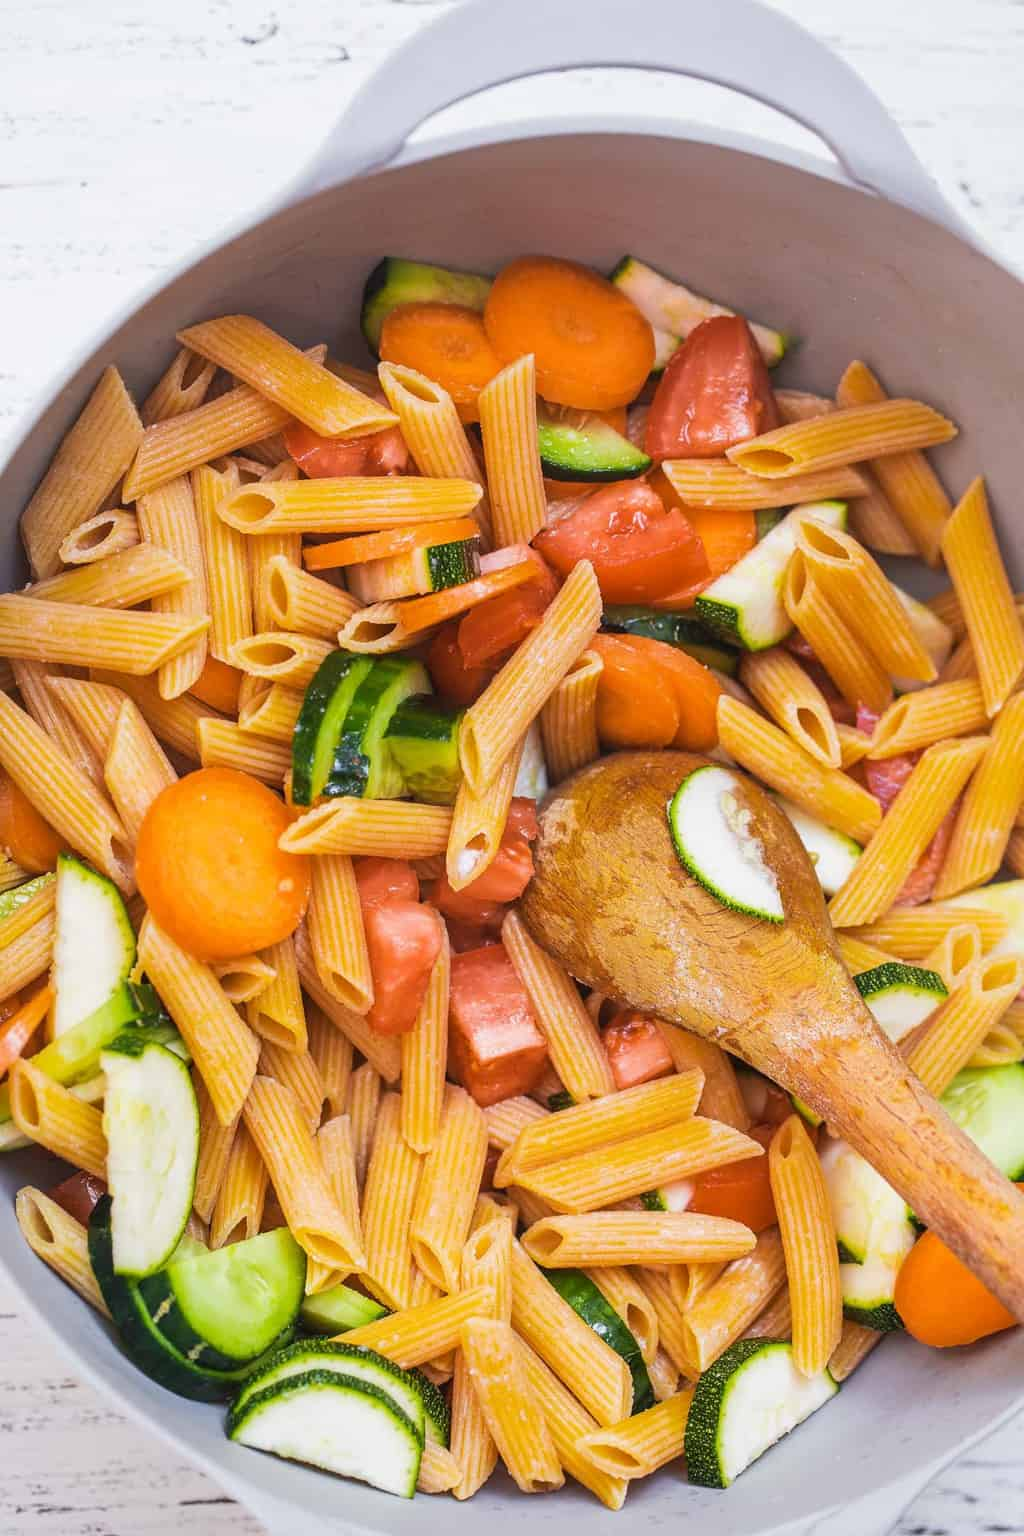 Pasta and vegetables in a mixing bowl